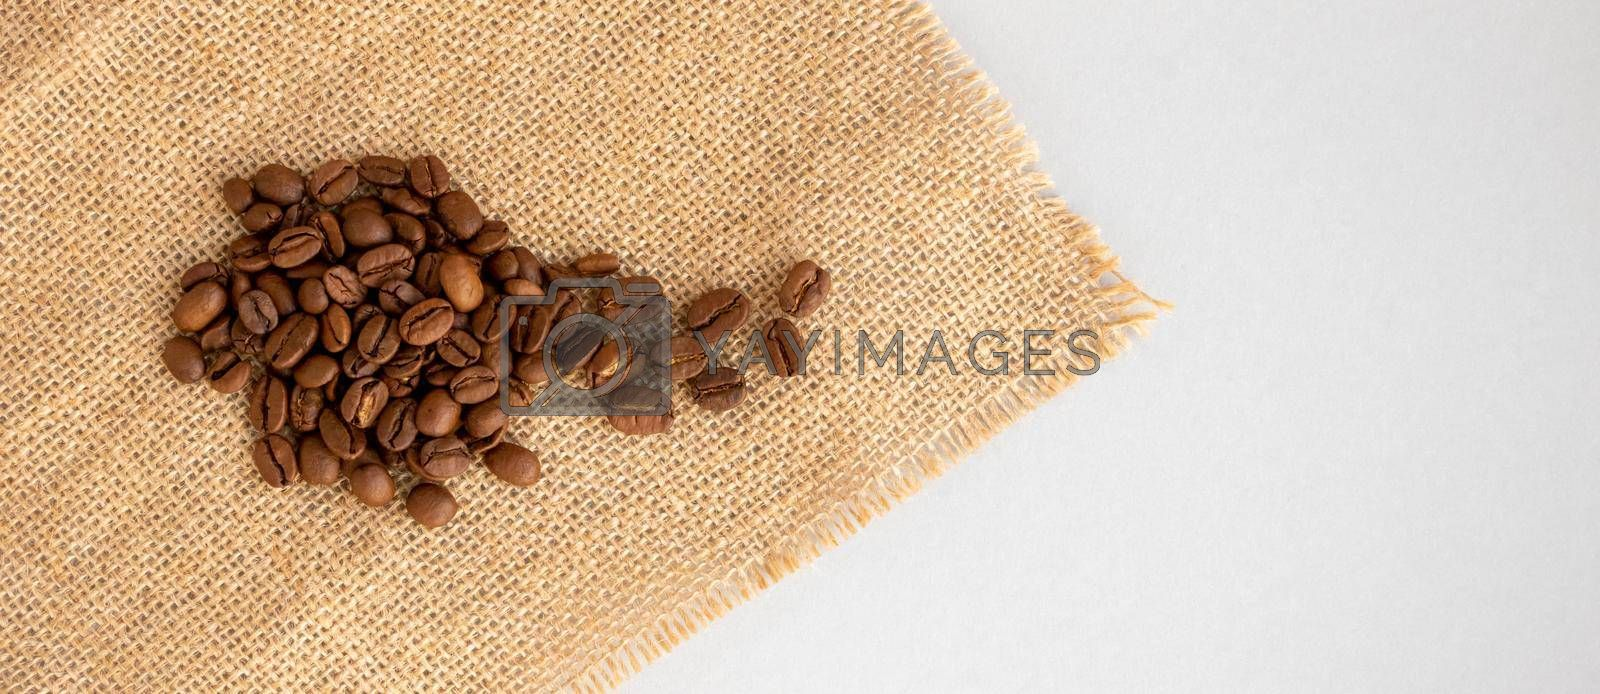 Coffee beans and burlap lie on a gray background.